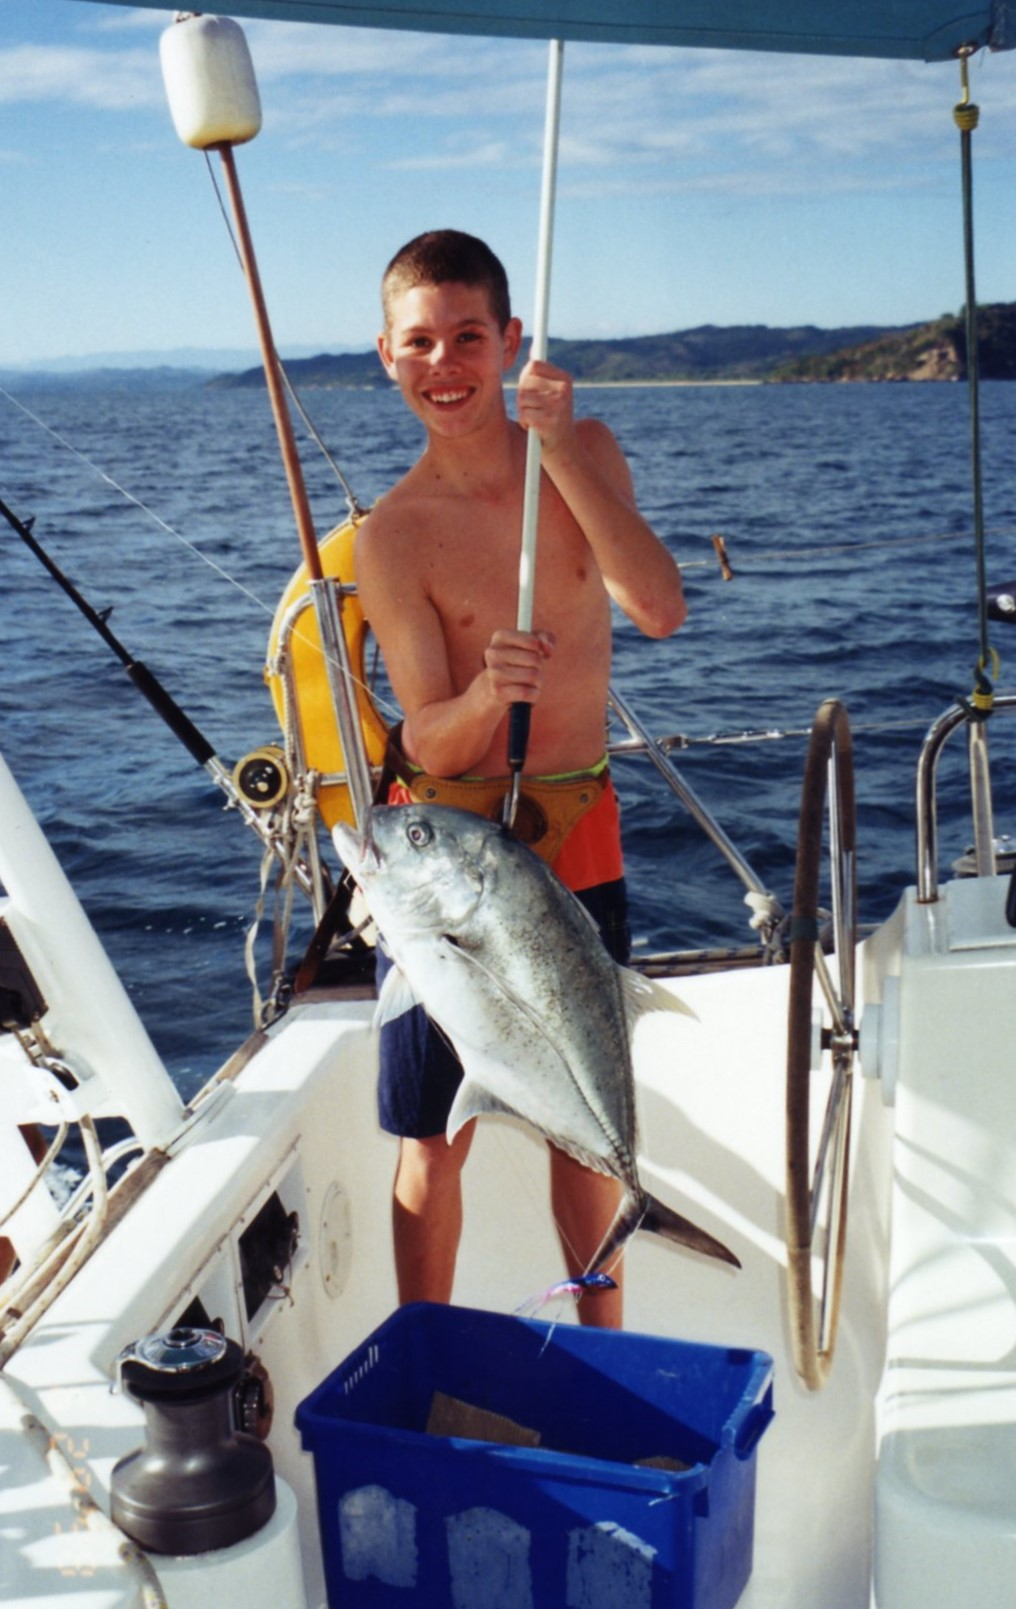 Catch of the day: Kingfish